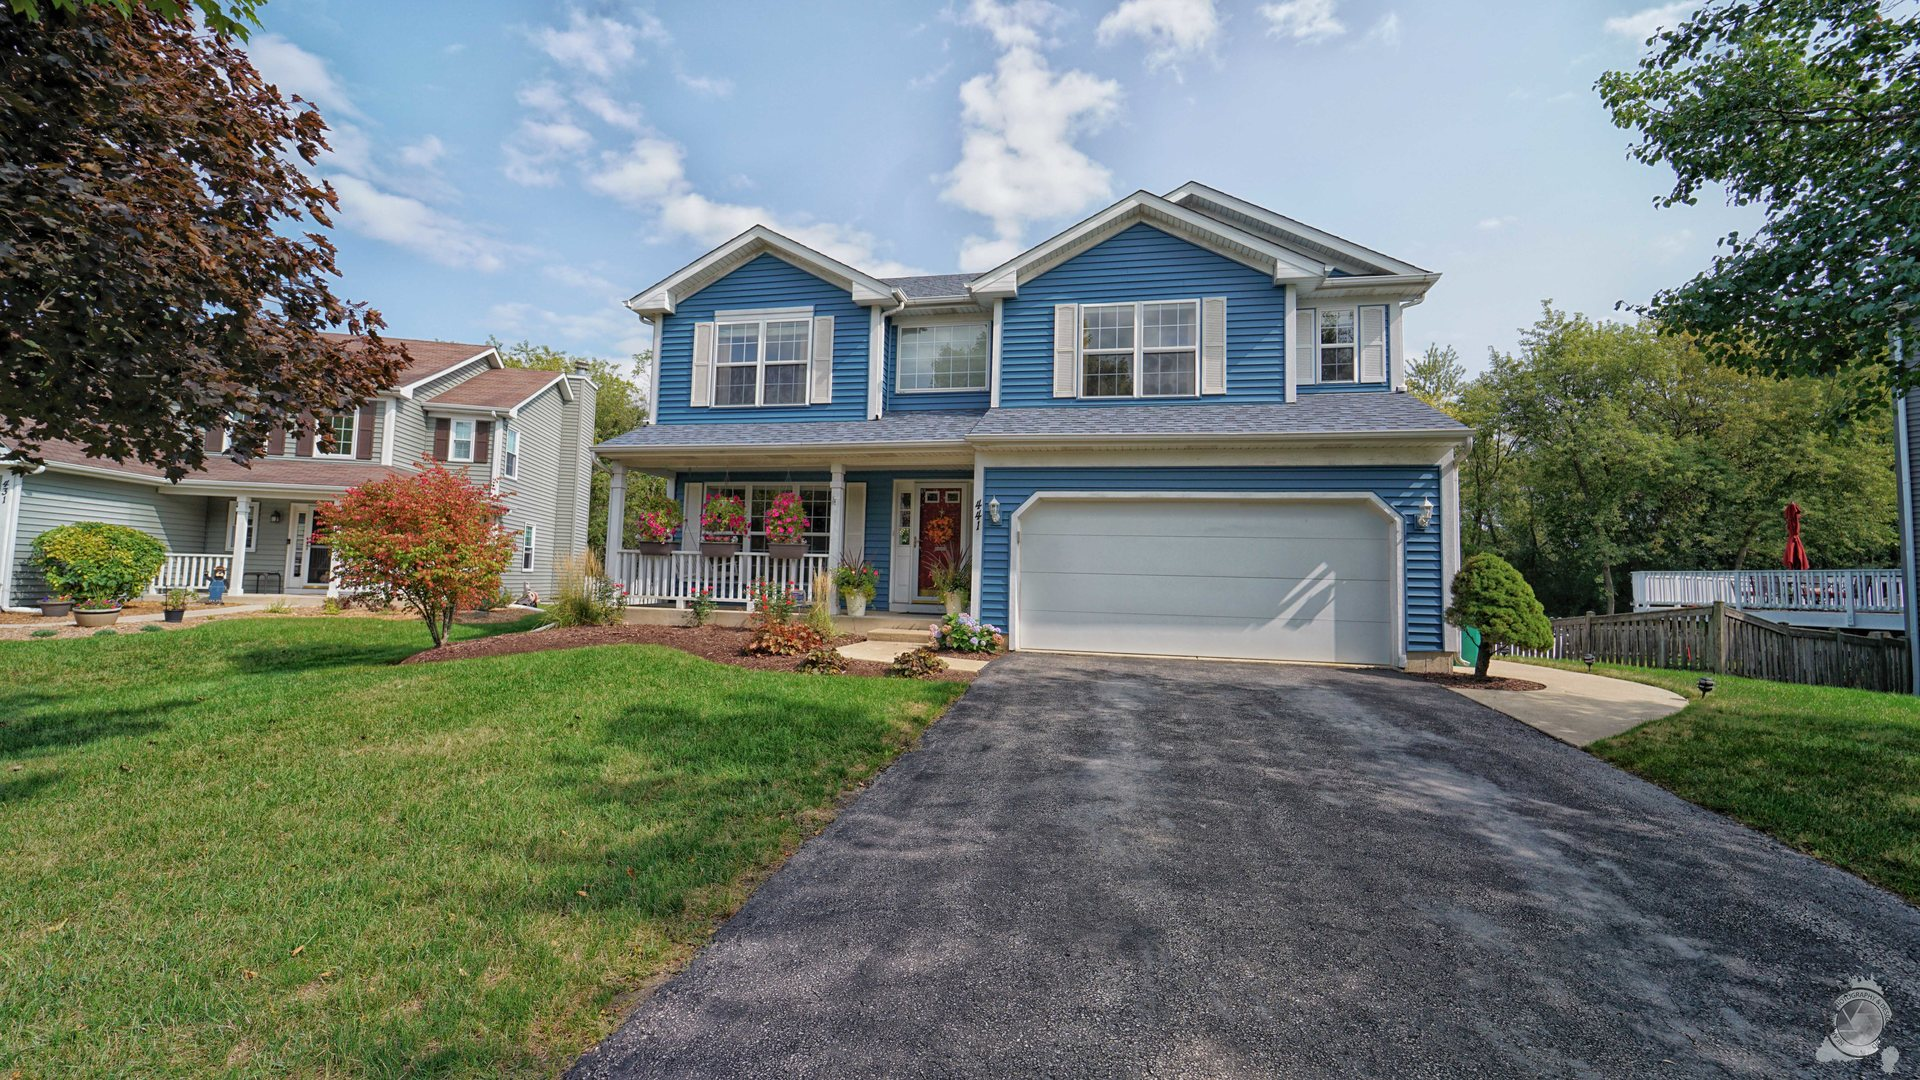 Photo for 441 Bald Eagle Court, Grayslake, IL 60030 (MLS # 10877091)